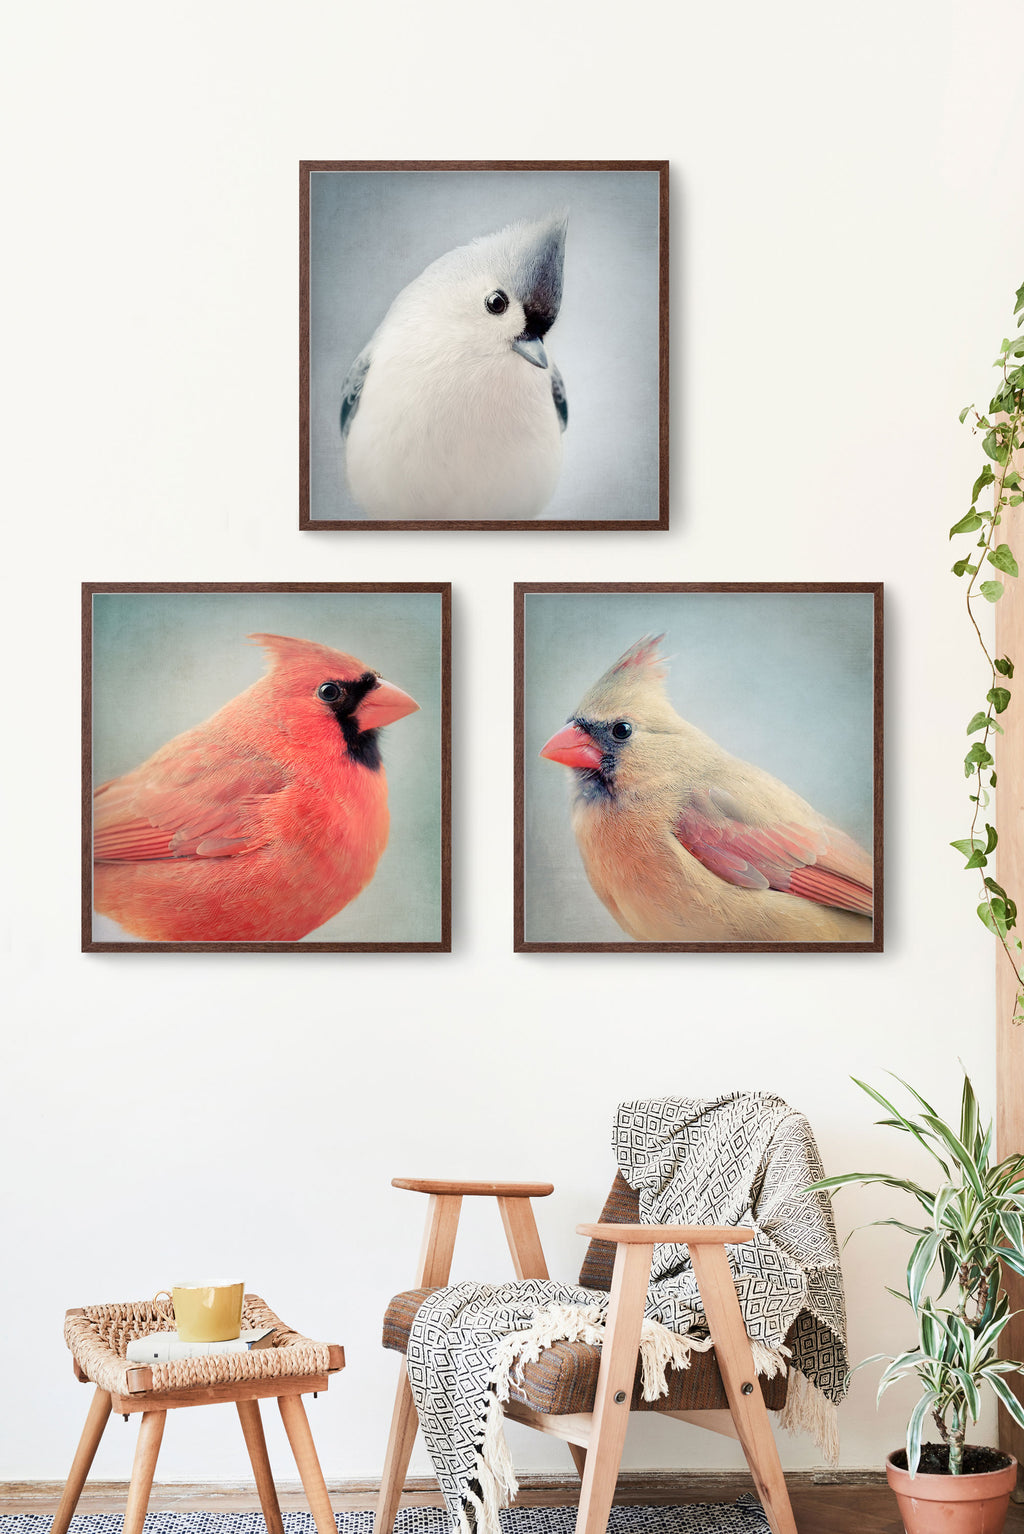 set of 3 photography prints of bird portraits